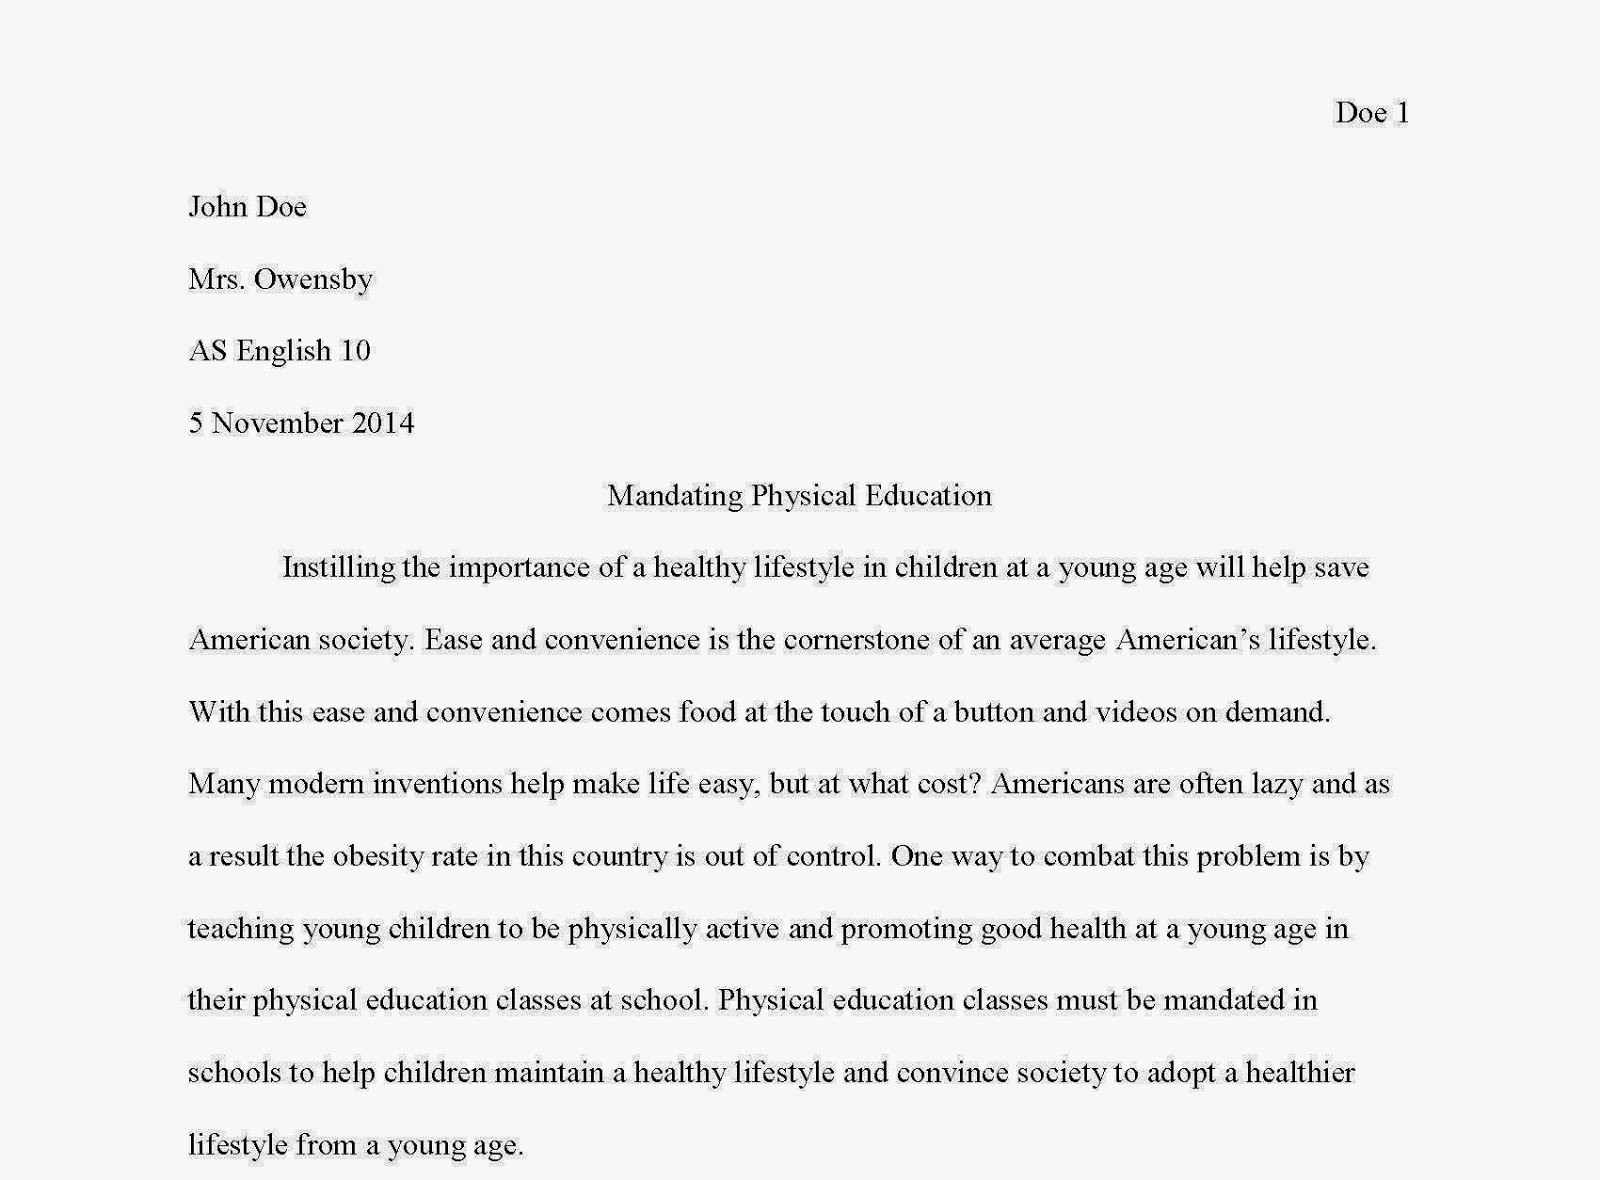 Example Of A Research Paper Introduction Paragraph - How to